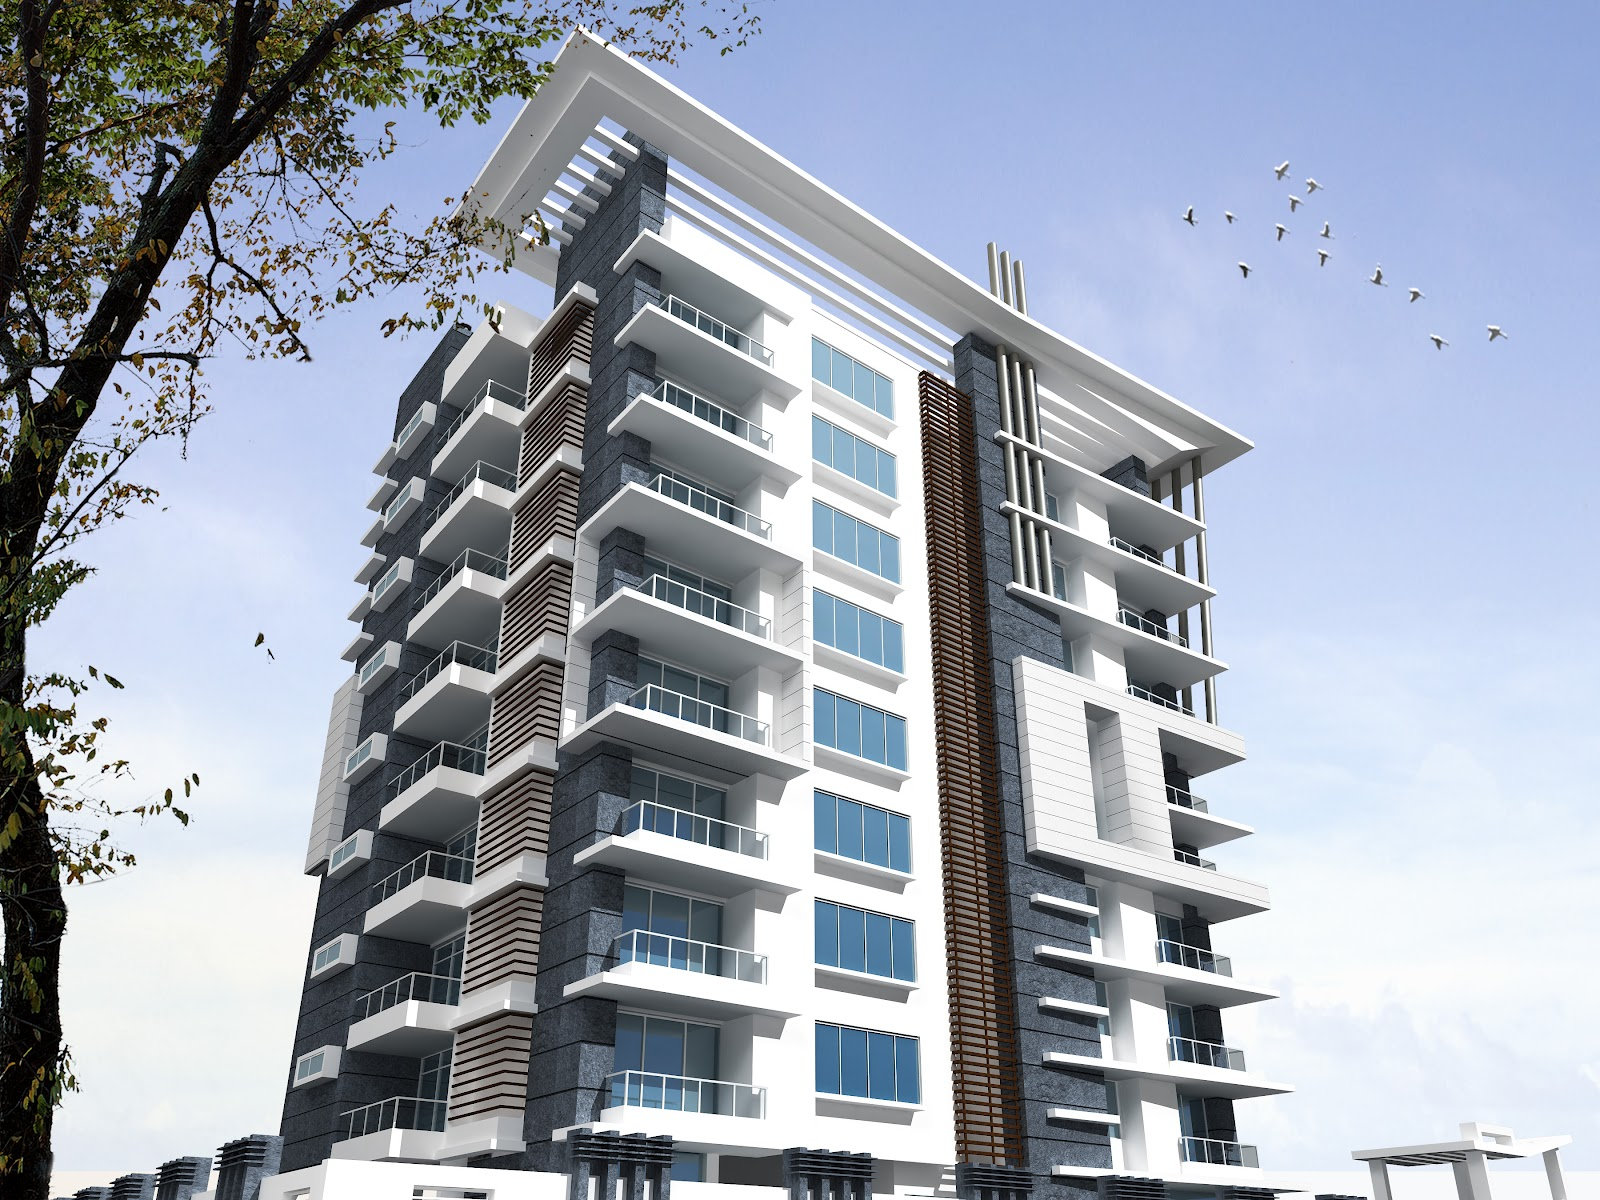 Our Recently Designed Project, Atlantis, Super Luxury Residential Apartments  At Bhawani Singh Road, C Scheme, Jaipur.